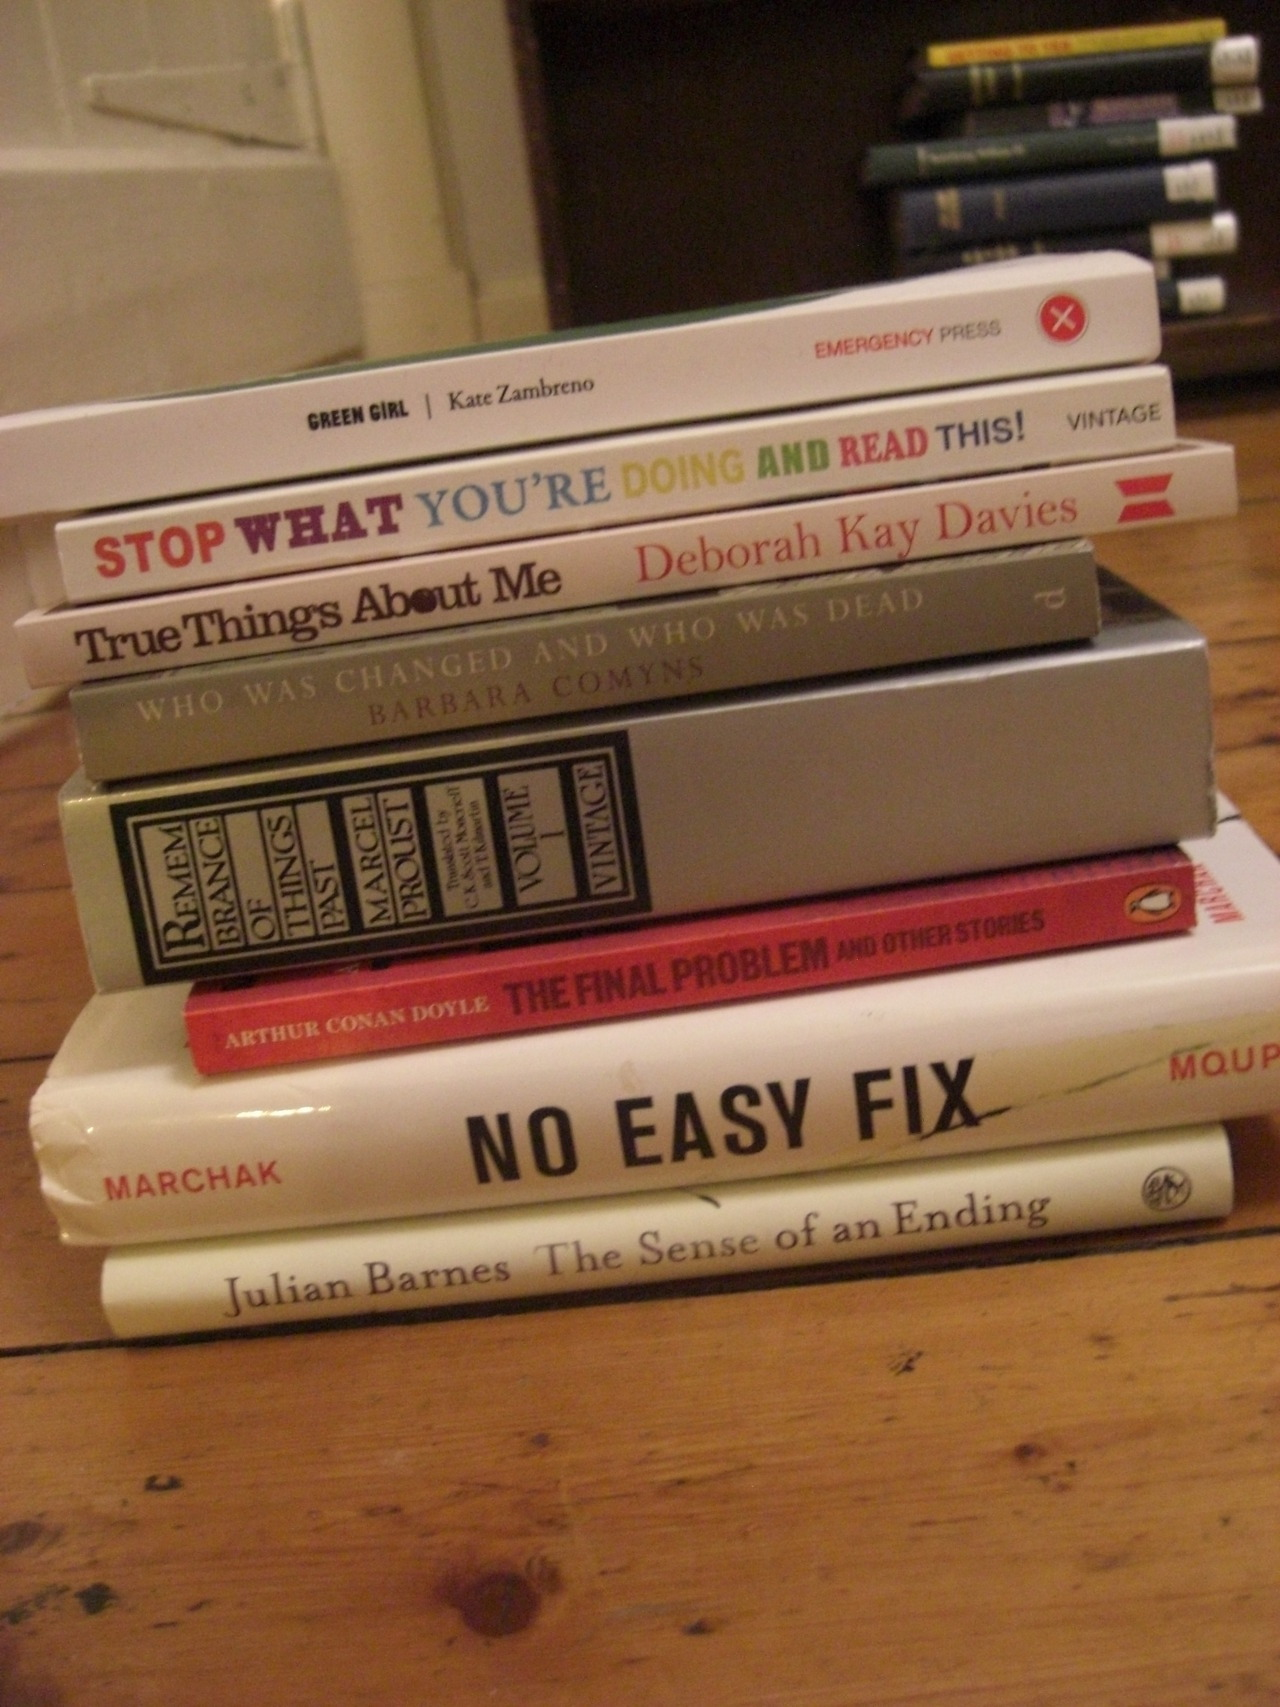 othernotebooksareavailable:  My go at a book spine poem - Green girl, Stop what you're doing and read this, True things about me, Who was changed and who was dead, Remembrance of things past, The final problem, No easy fix, The sense of an ending.